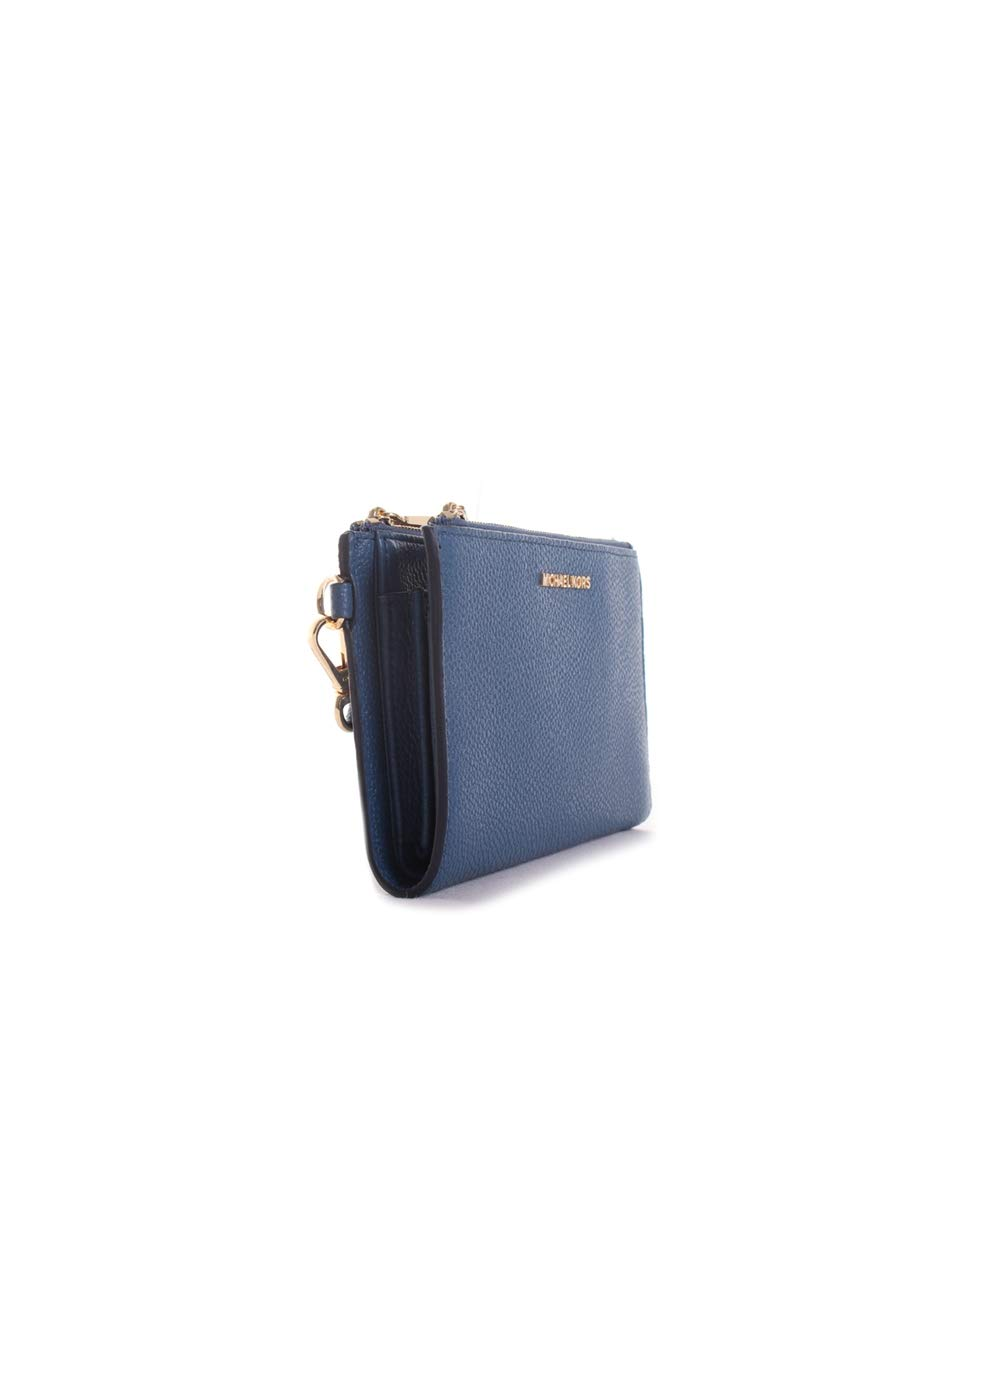 Michael Kors Double Zip Leather Wristlet in Dark Chambray by Michael Kors (Image #2)